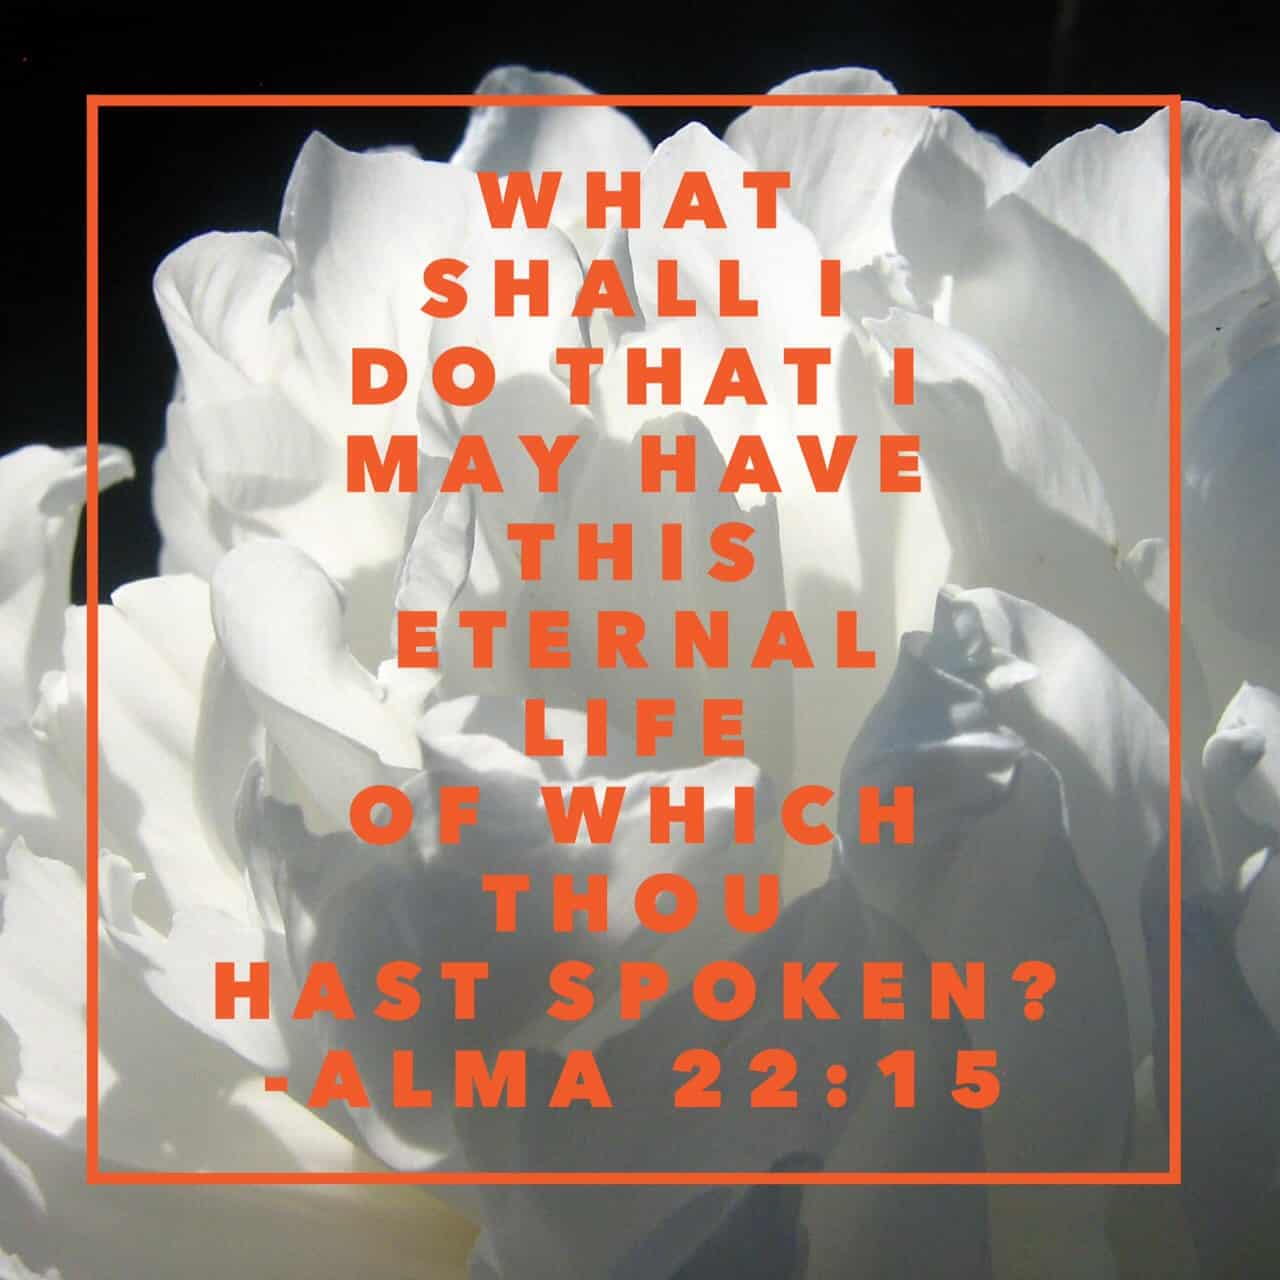 ...What shall I do that I may have this eternal life of which thou hast spoken? Yea, what shall I do that I may be born of God, having this wicked spirit rooted out of my breast, and receive his Spirit, that I may be filled with joy, that I may not be cast off at the last day? Behold, said he, I will give up all that I possess, yea, I will forsake my kingdom, that I may receive this great joy. Alma 22:15